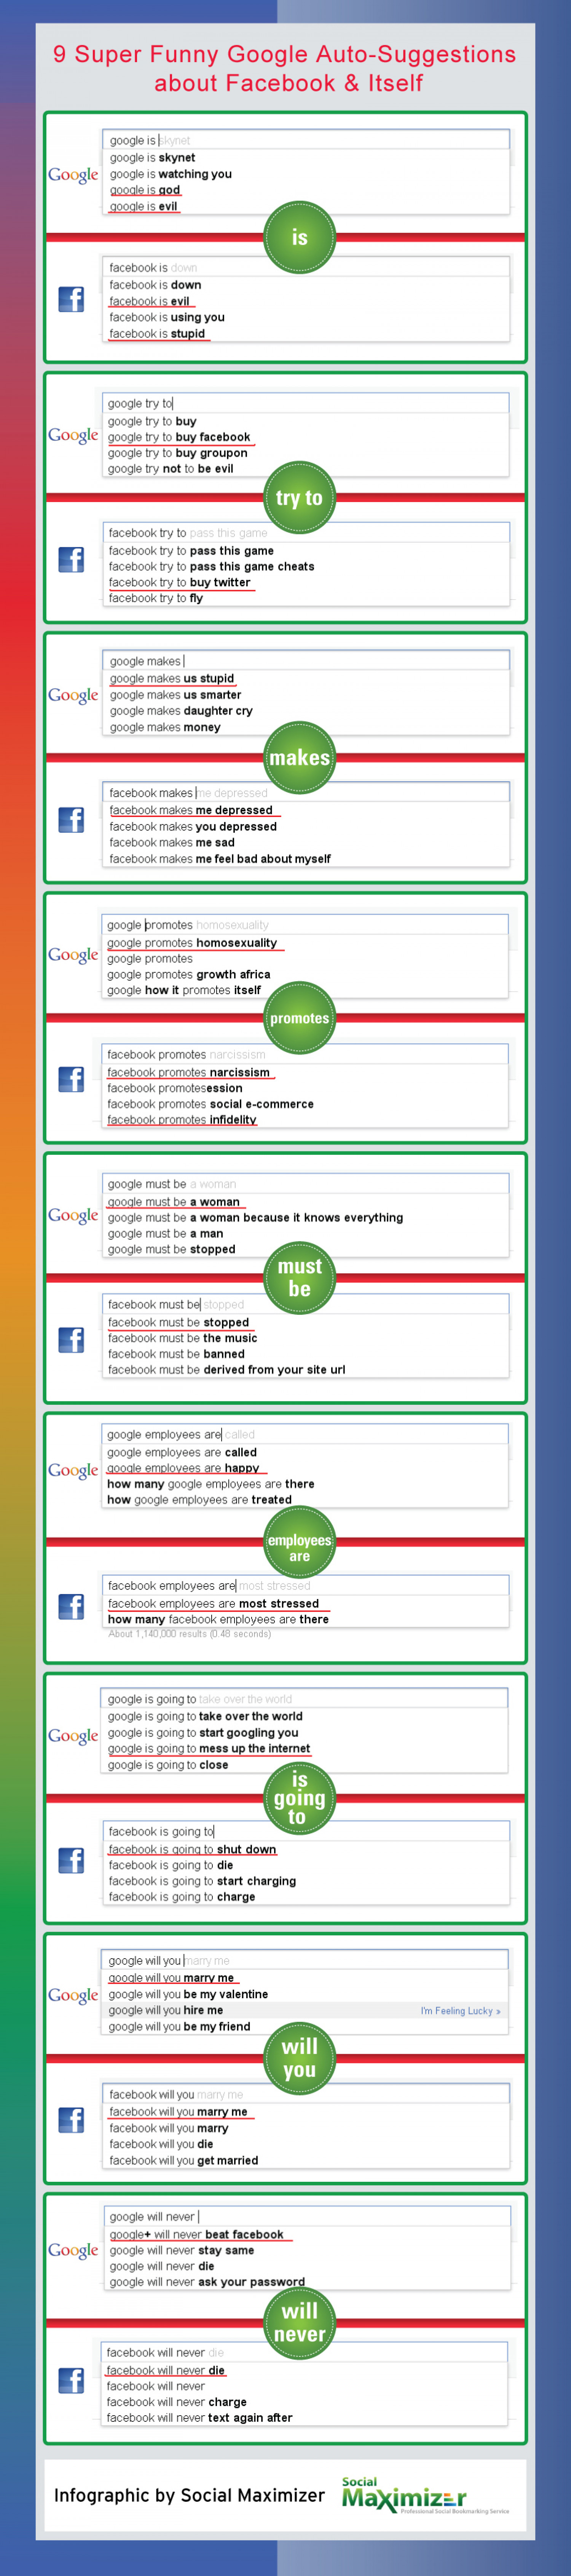 9 Super Funny Google Auto-Suggestions about Facebook & Itself Infographic